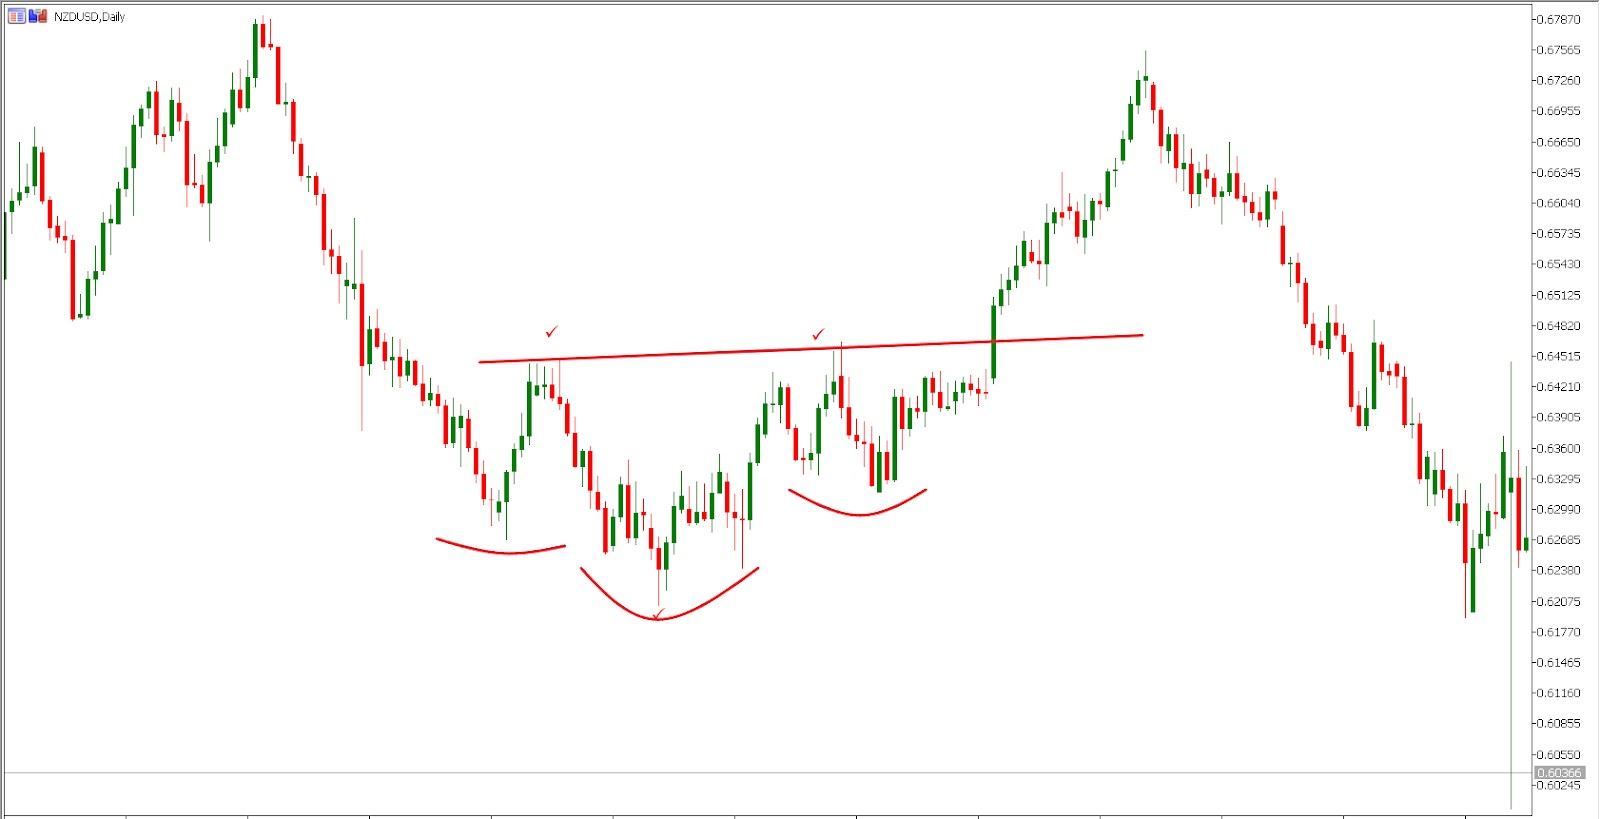 Spotting the inverse head and shoulders pattern (MetaTrader5)